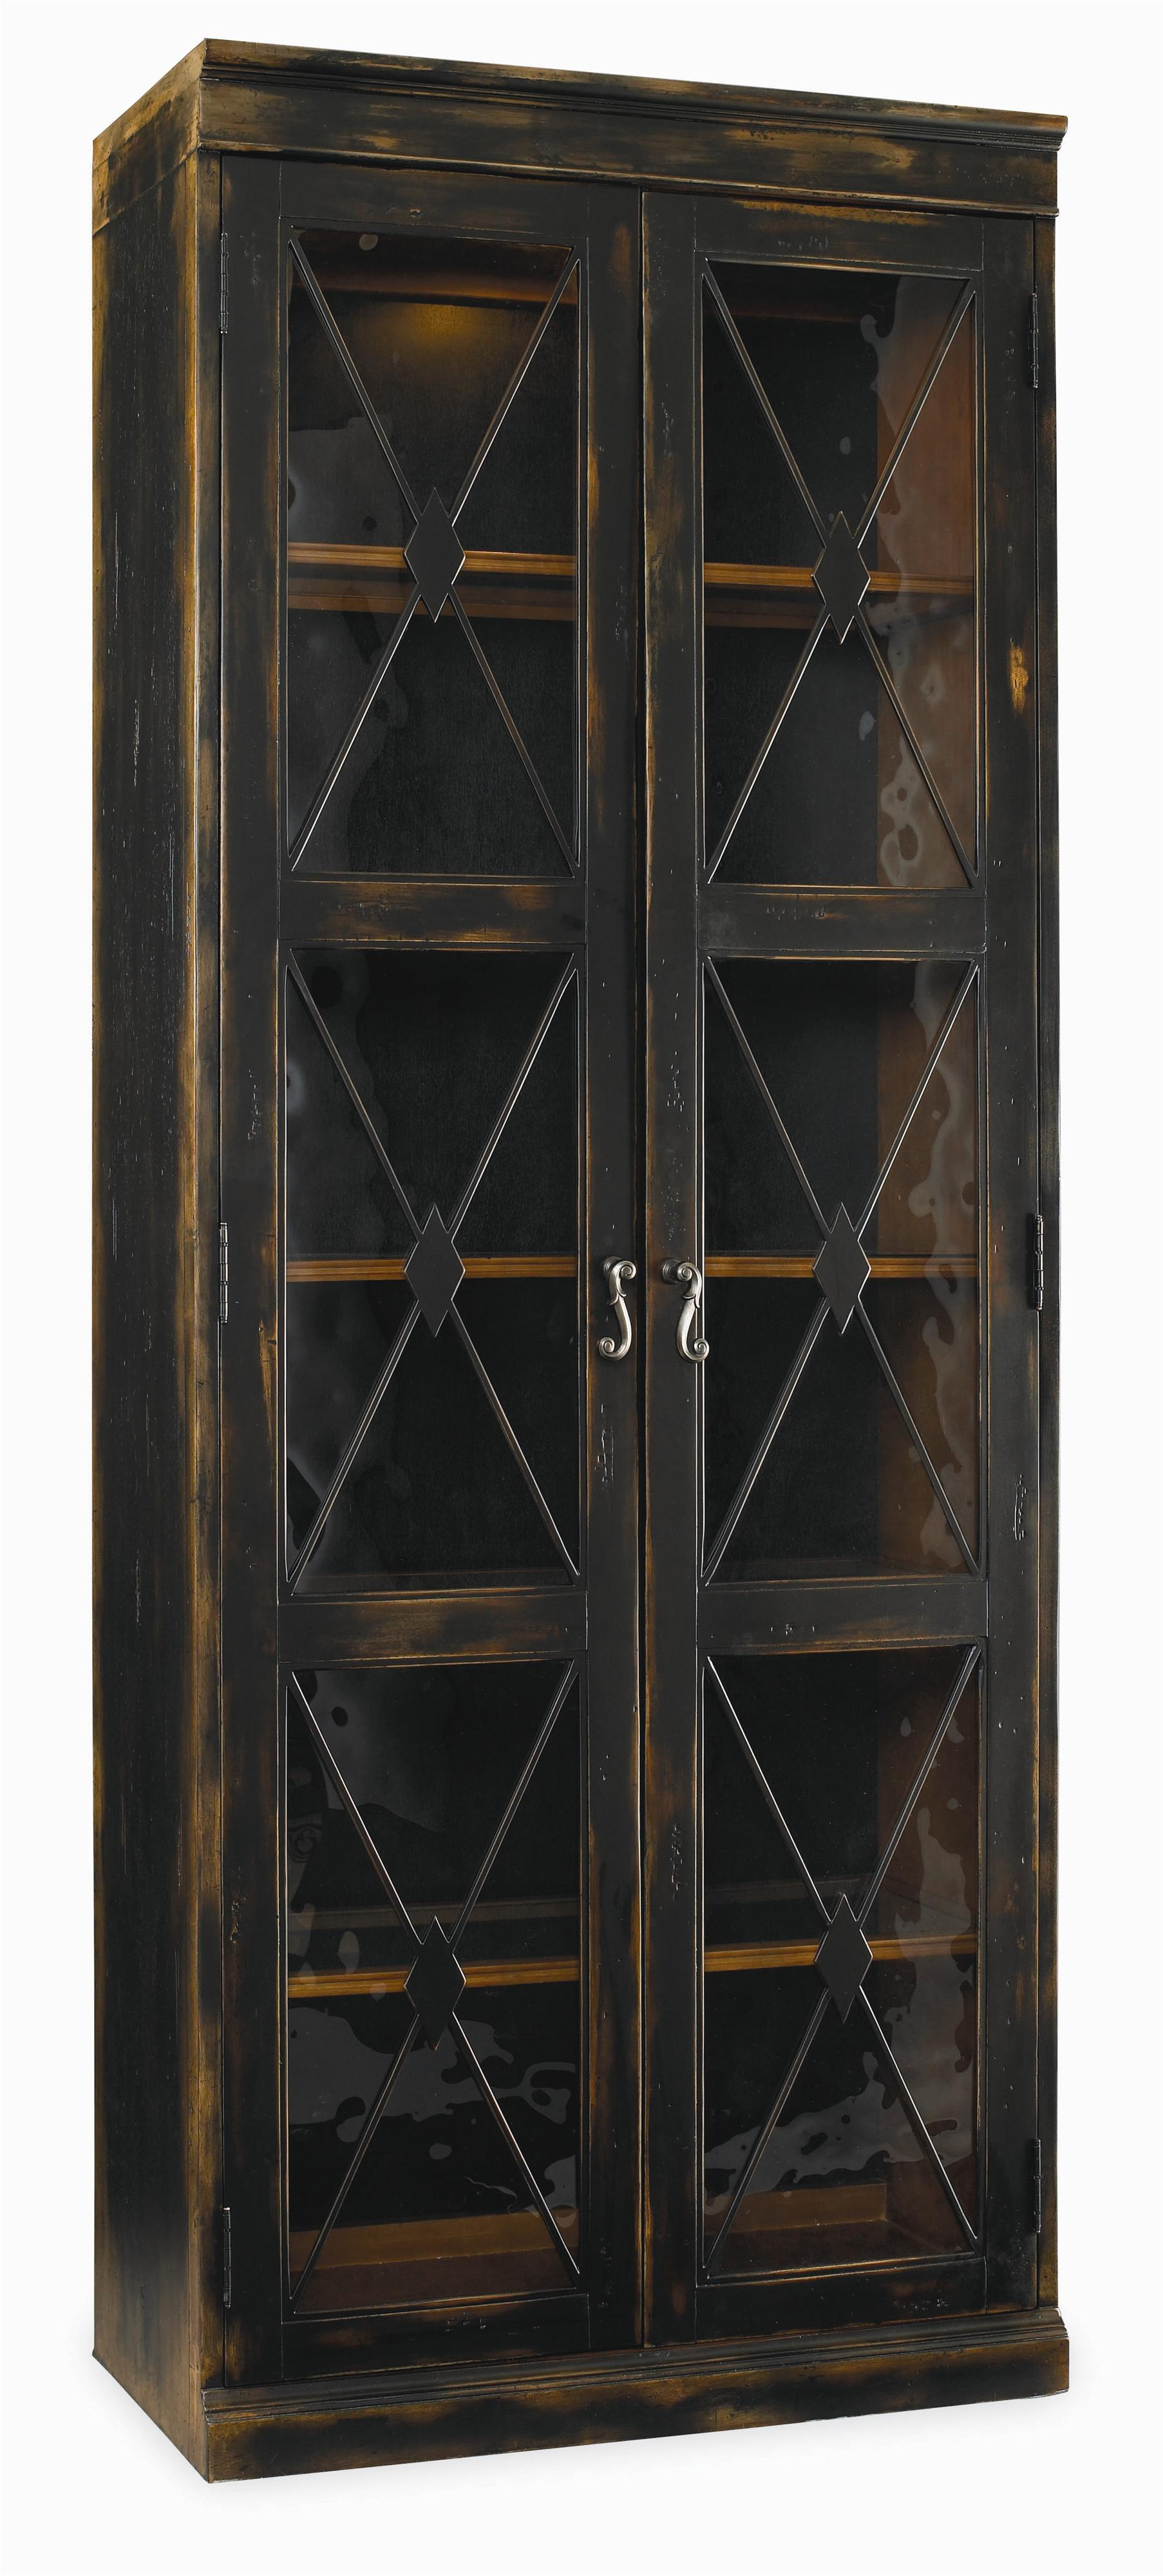 Hooker Furniture Sanctuary Two Door Thin Display Cabinet - Item Number: 3005-50001